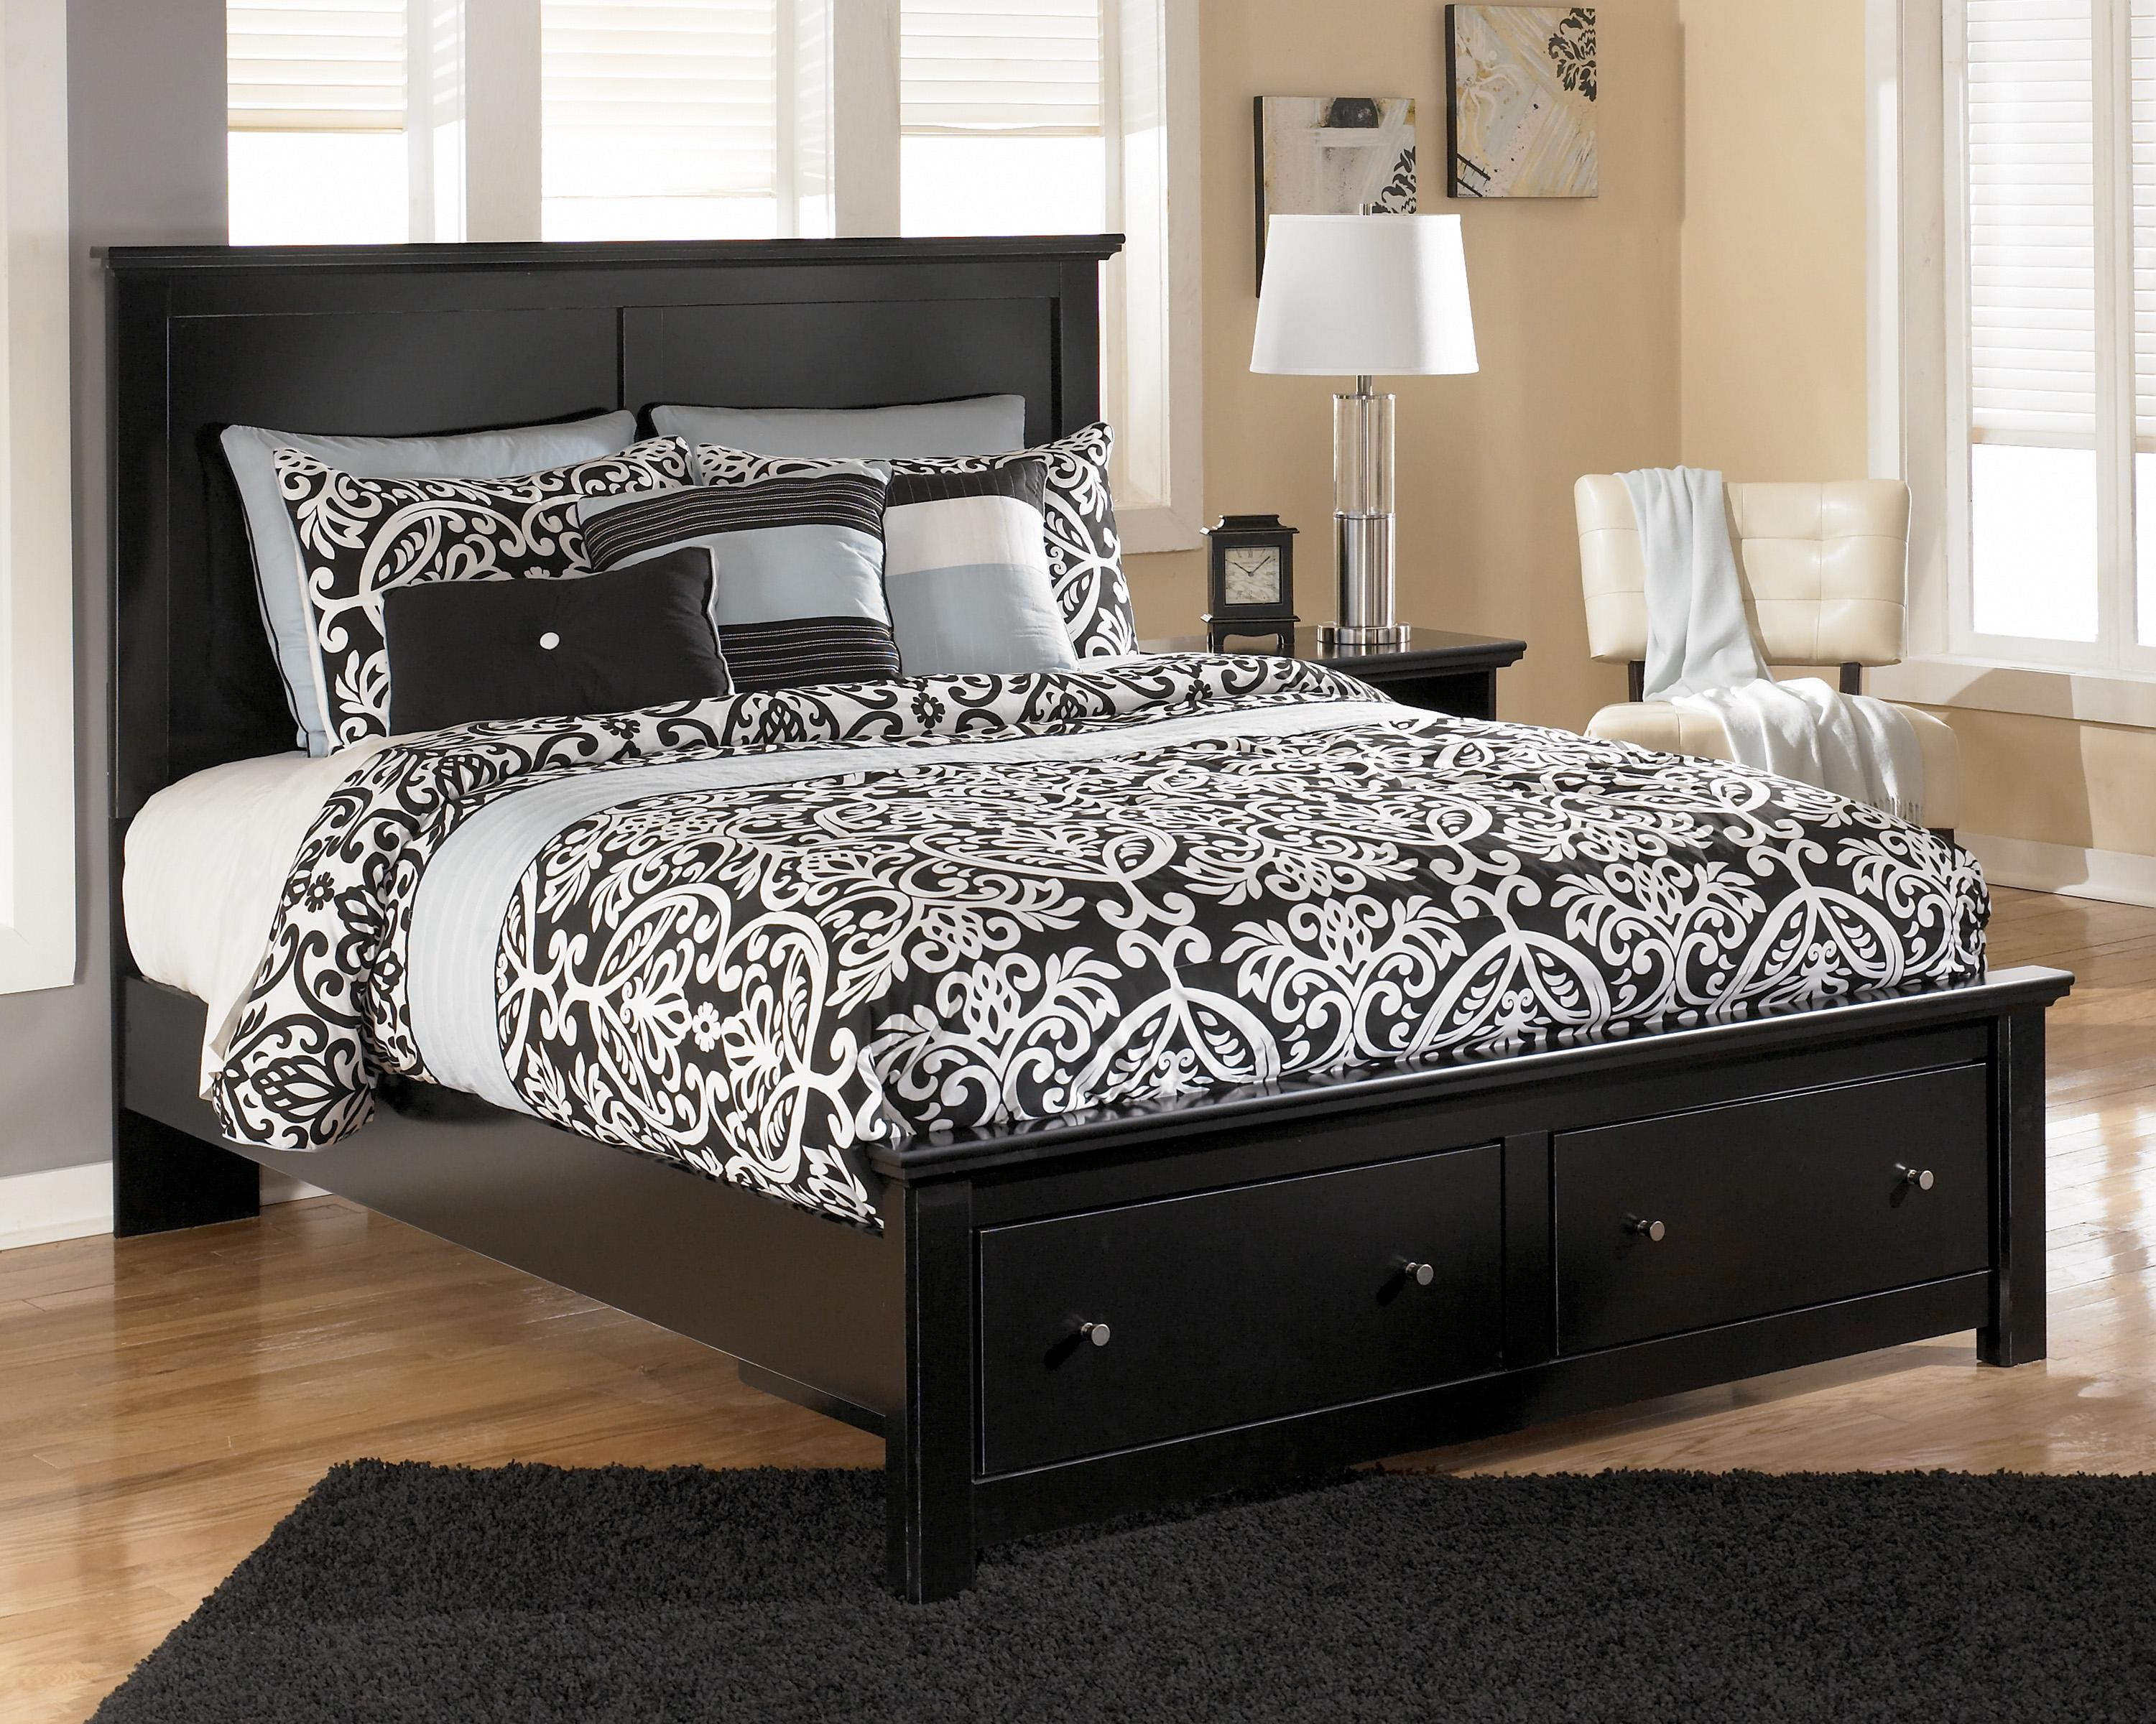 Signature Design By Ashley Maribel Queen Storage Bed With